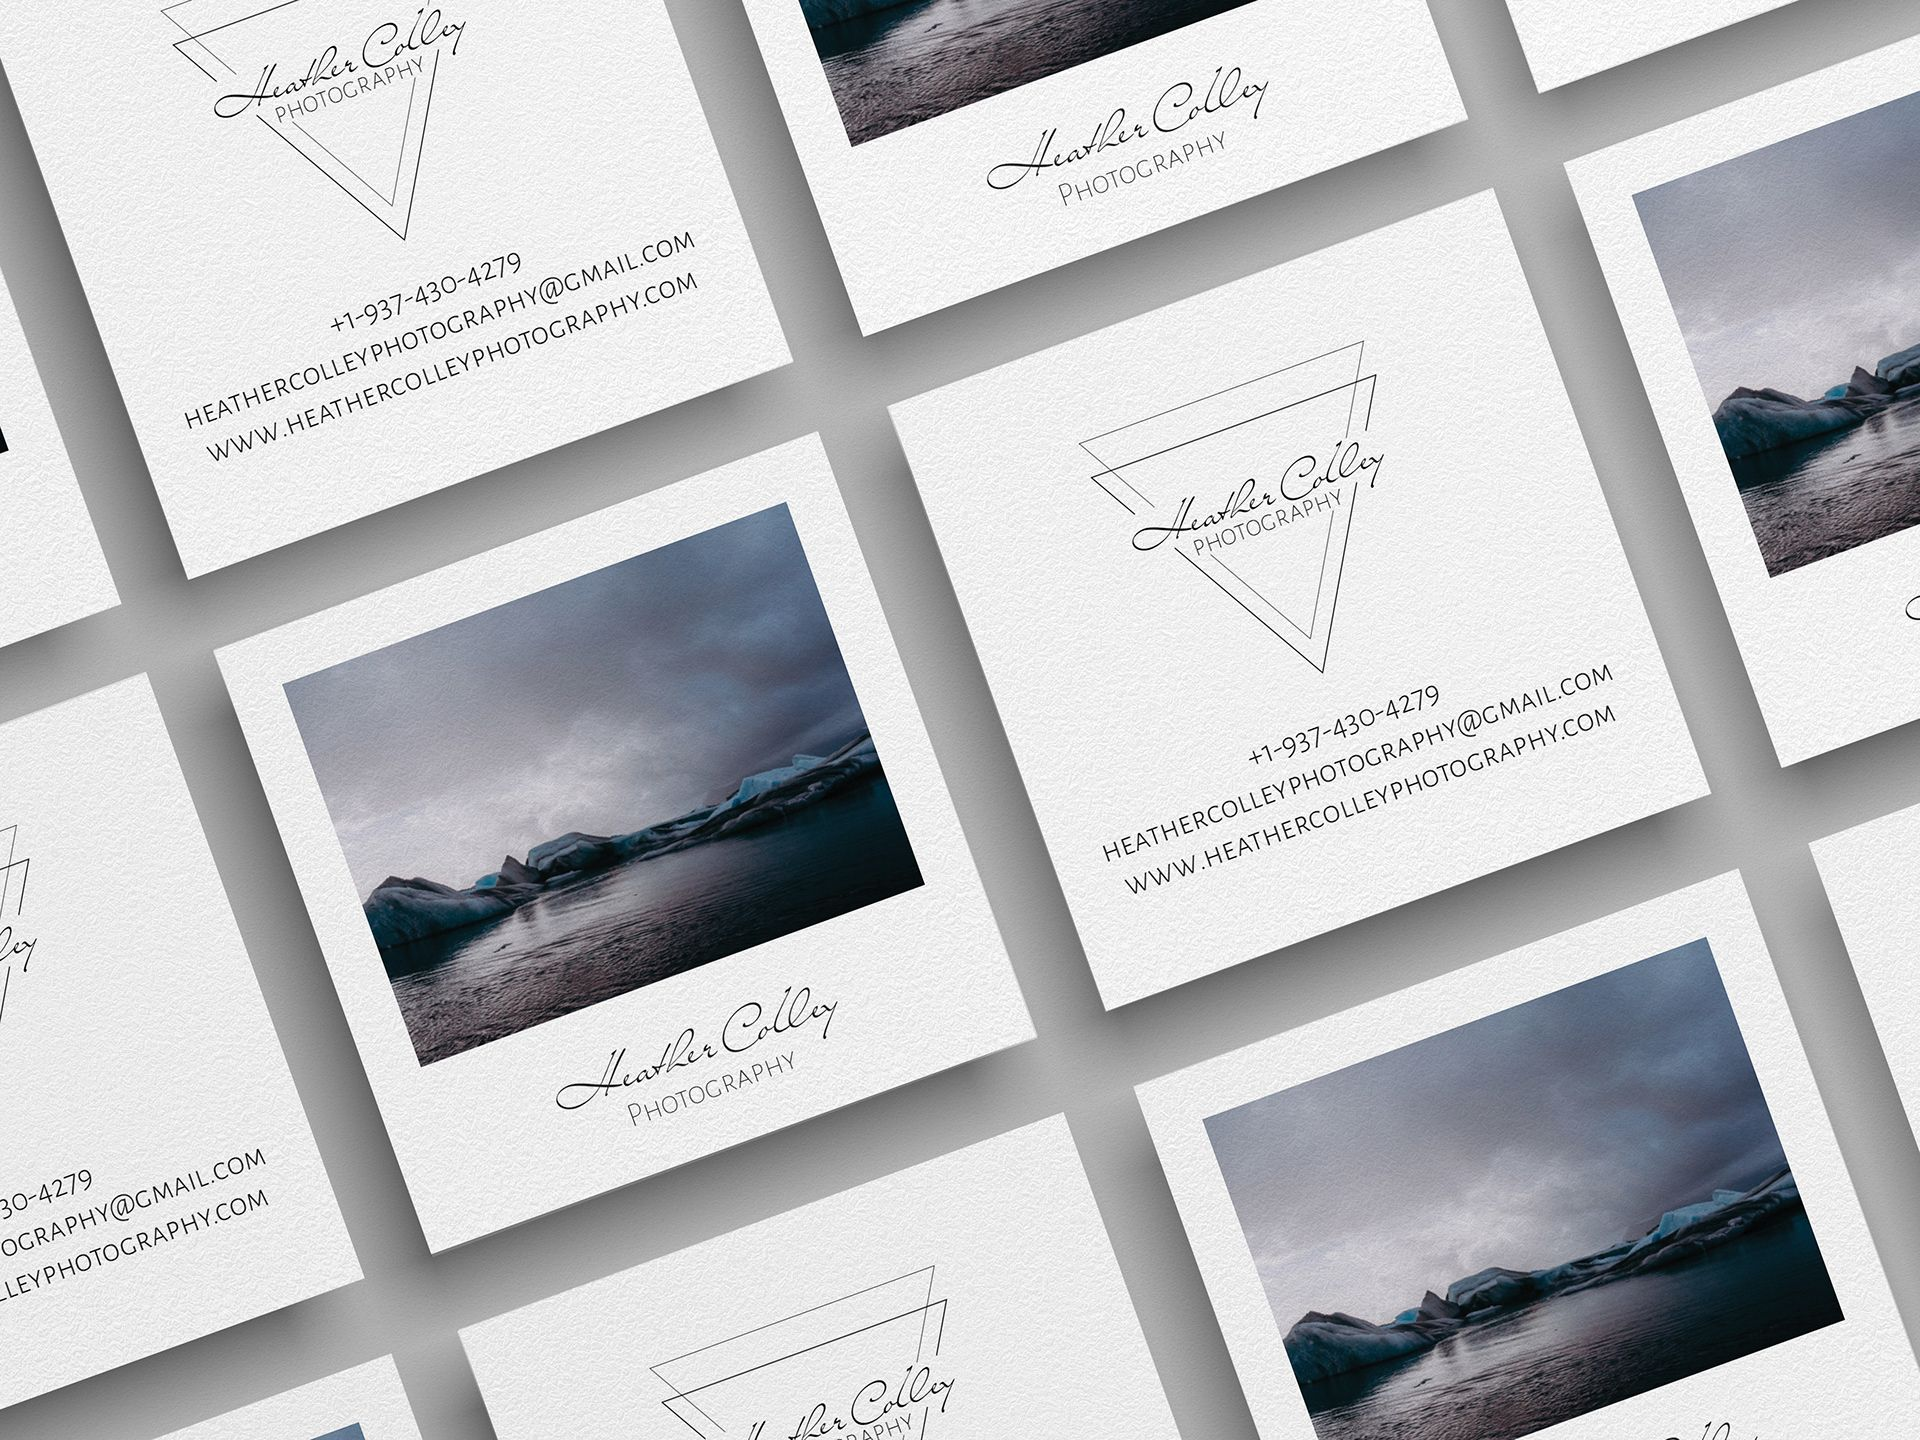 Business card designed. Made to look like a Polaroid picture with a landscape of glaciers in Iceland and business info.